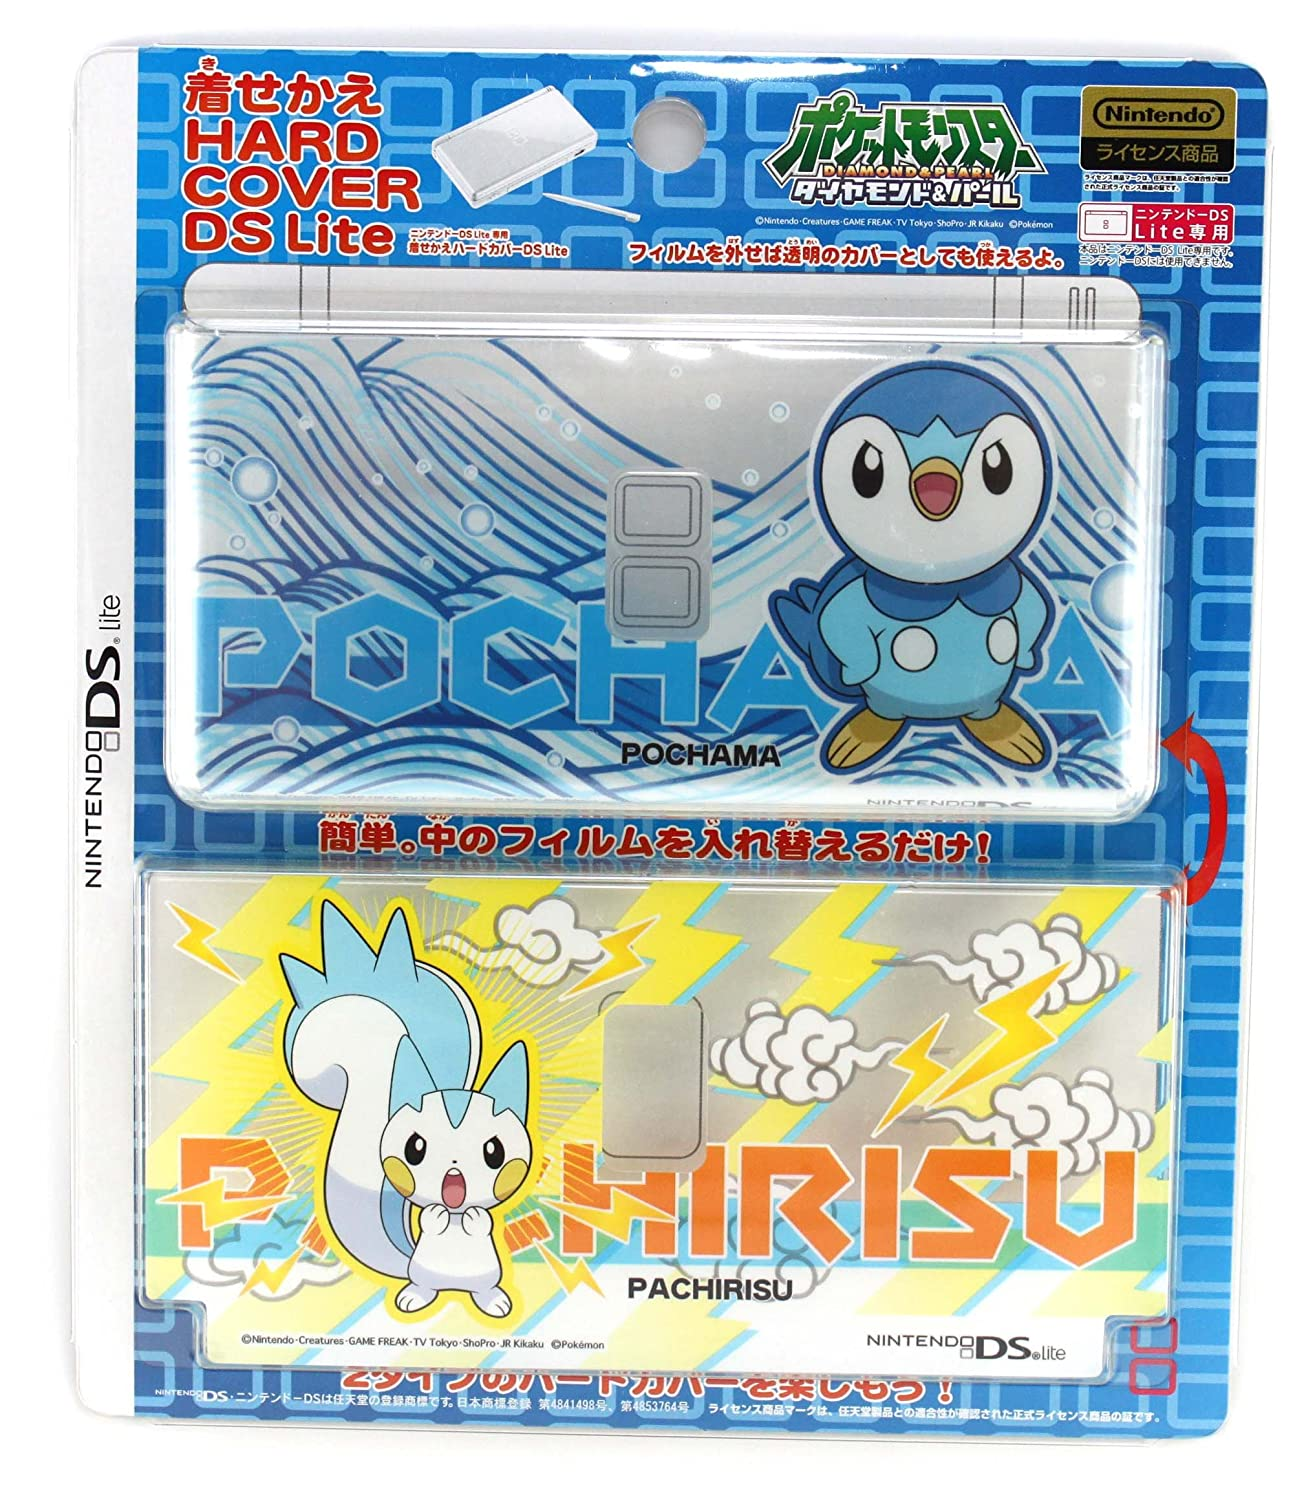 DS Lite Official Pokemon Diamond and Pearl Hard Cover (Top Cover Only) - Piplup and Pachirisu